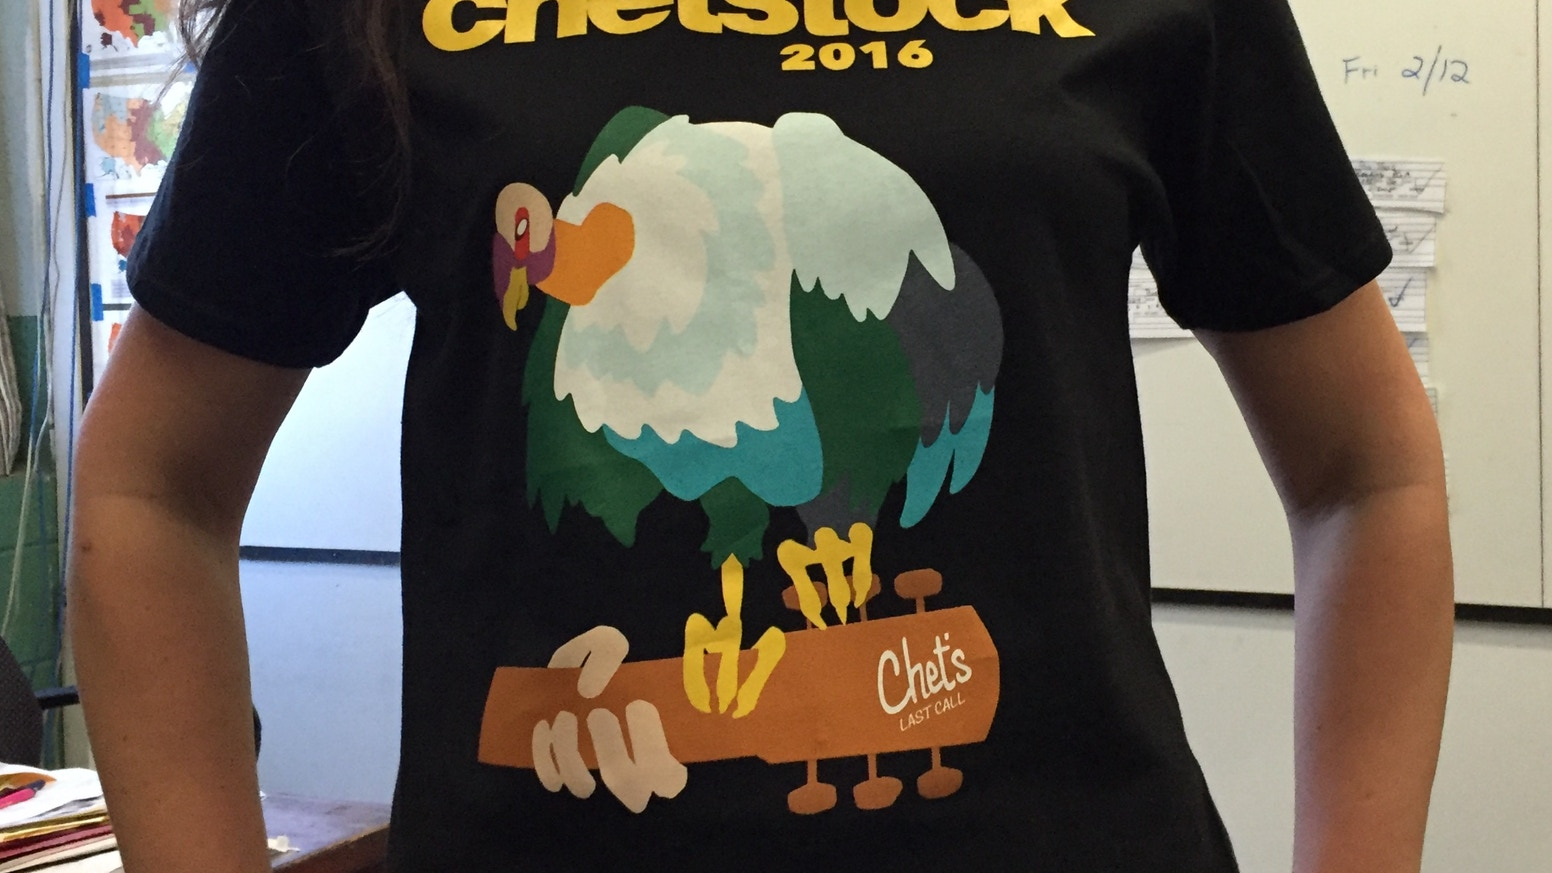 Some of the acts on Chetstock 2016 May 21st at Once , once again.....are. Xanna Don't Reunion, Real Kids, Classic Ruins, Randy Black, Hopelessly Obscure, Harlequin , Surprise guest singers, and a Burlesque show Chet's style !